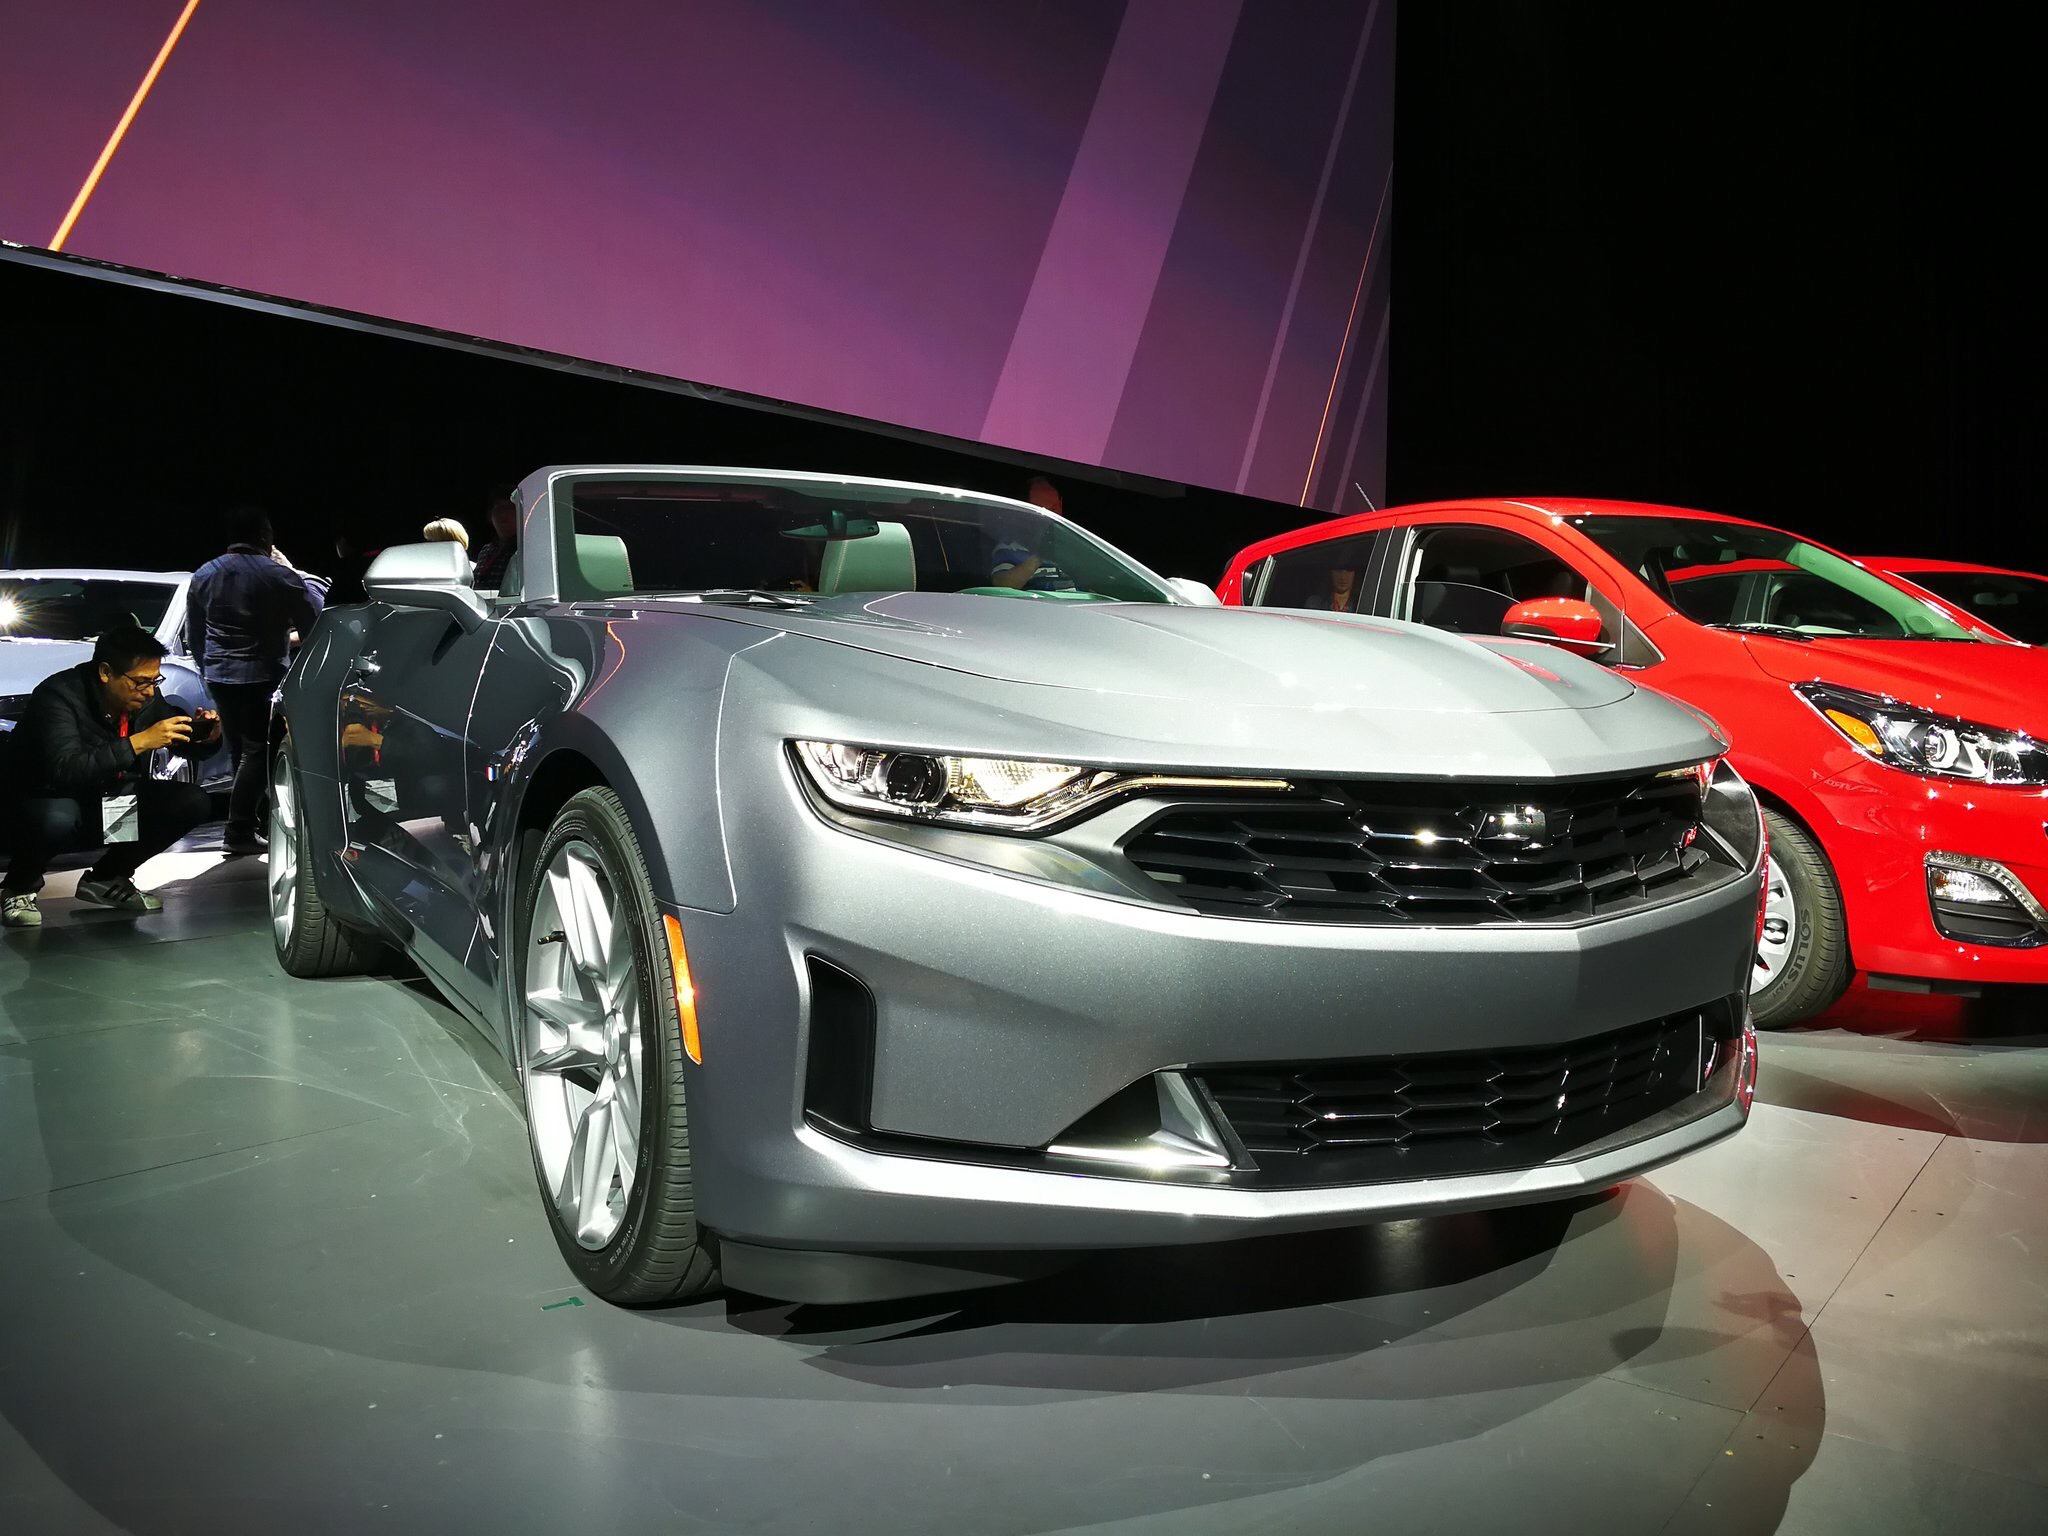 2019 Chevrolet Camaro Revealed With New Looks | GM Authority